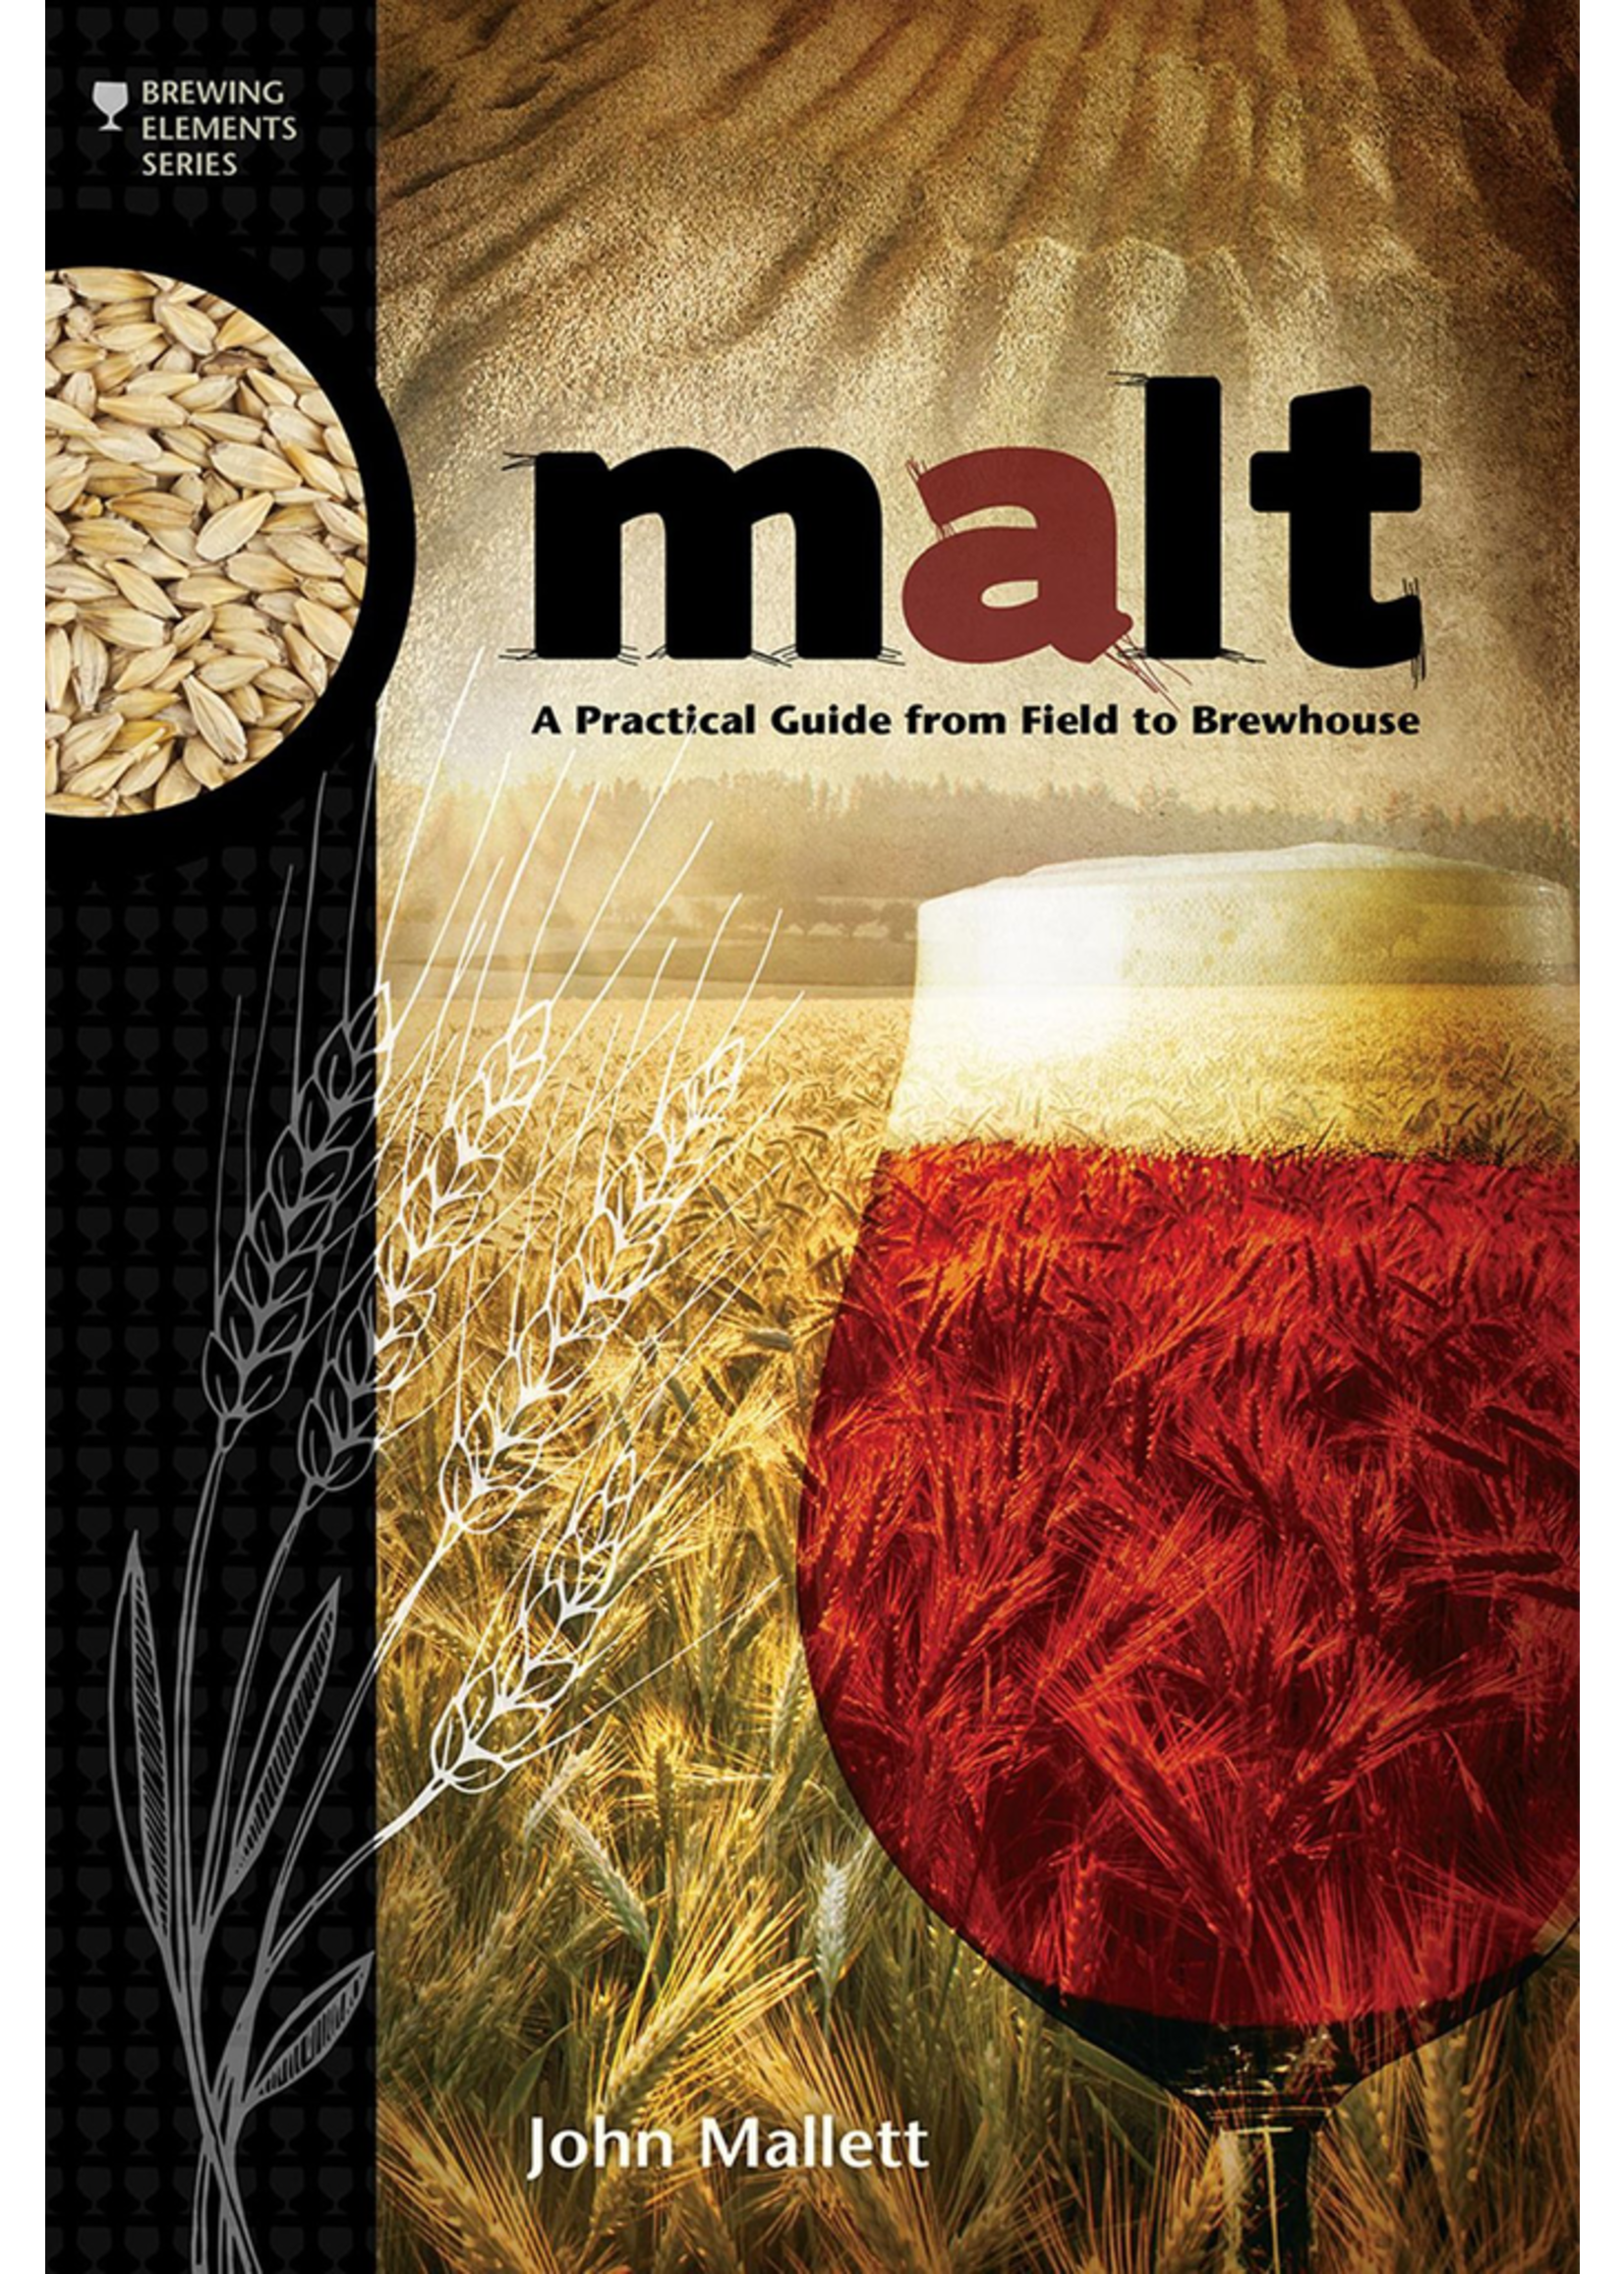 Books Malt - A Practical Guide from Field to Brewhouse (John Mallett)